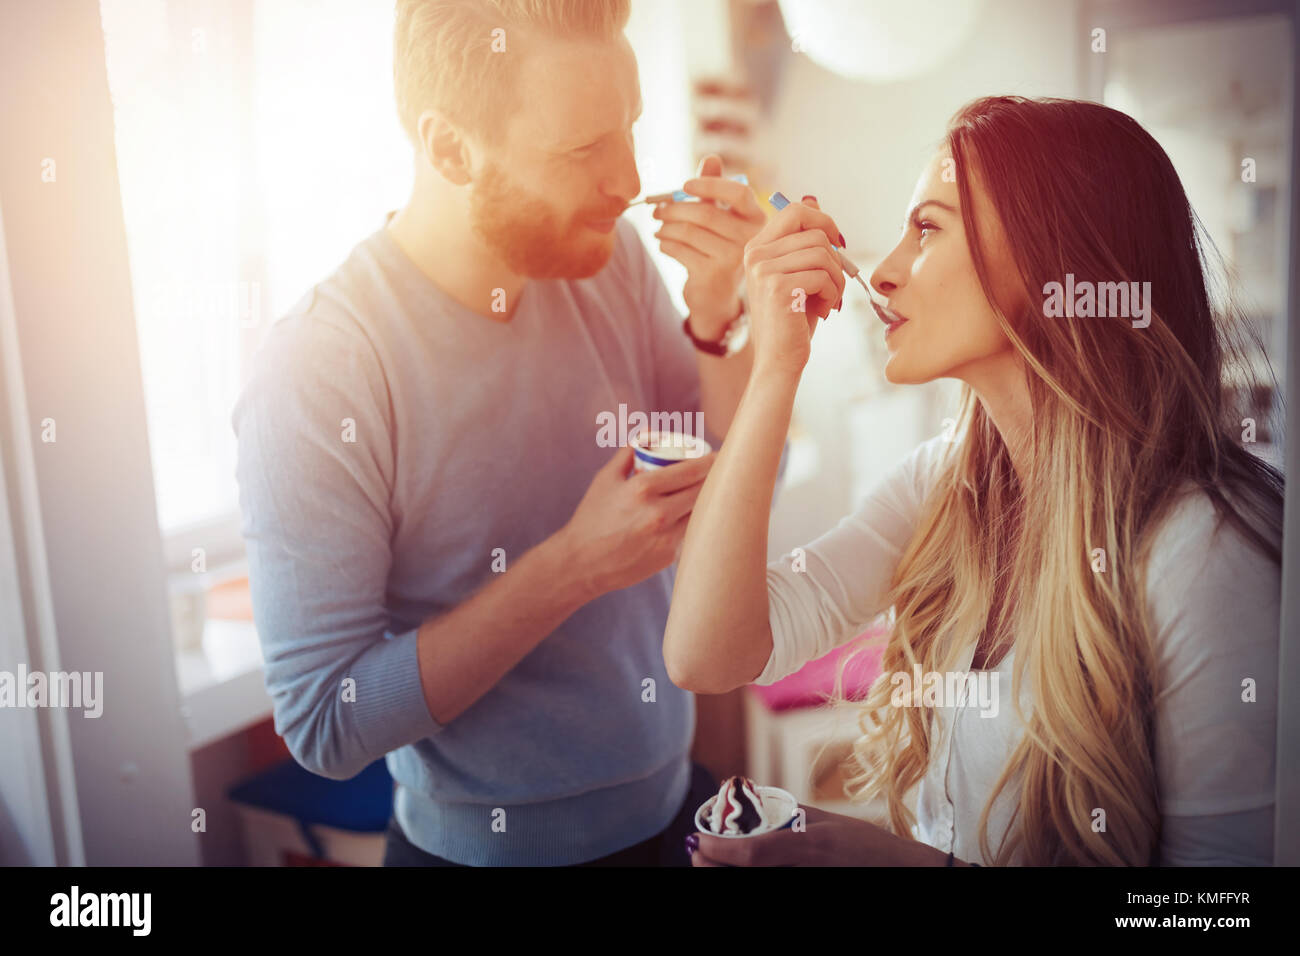 Couple having fun and laughing at home while eating ice cream Stock Photo